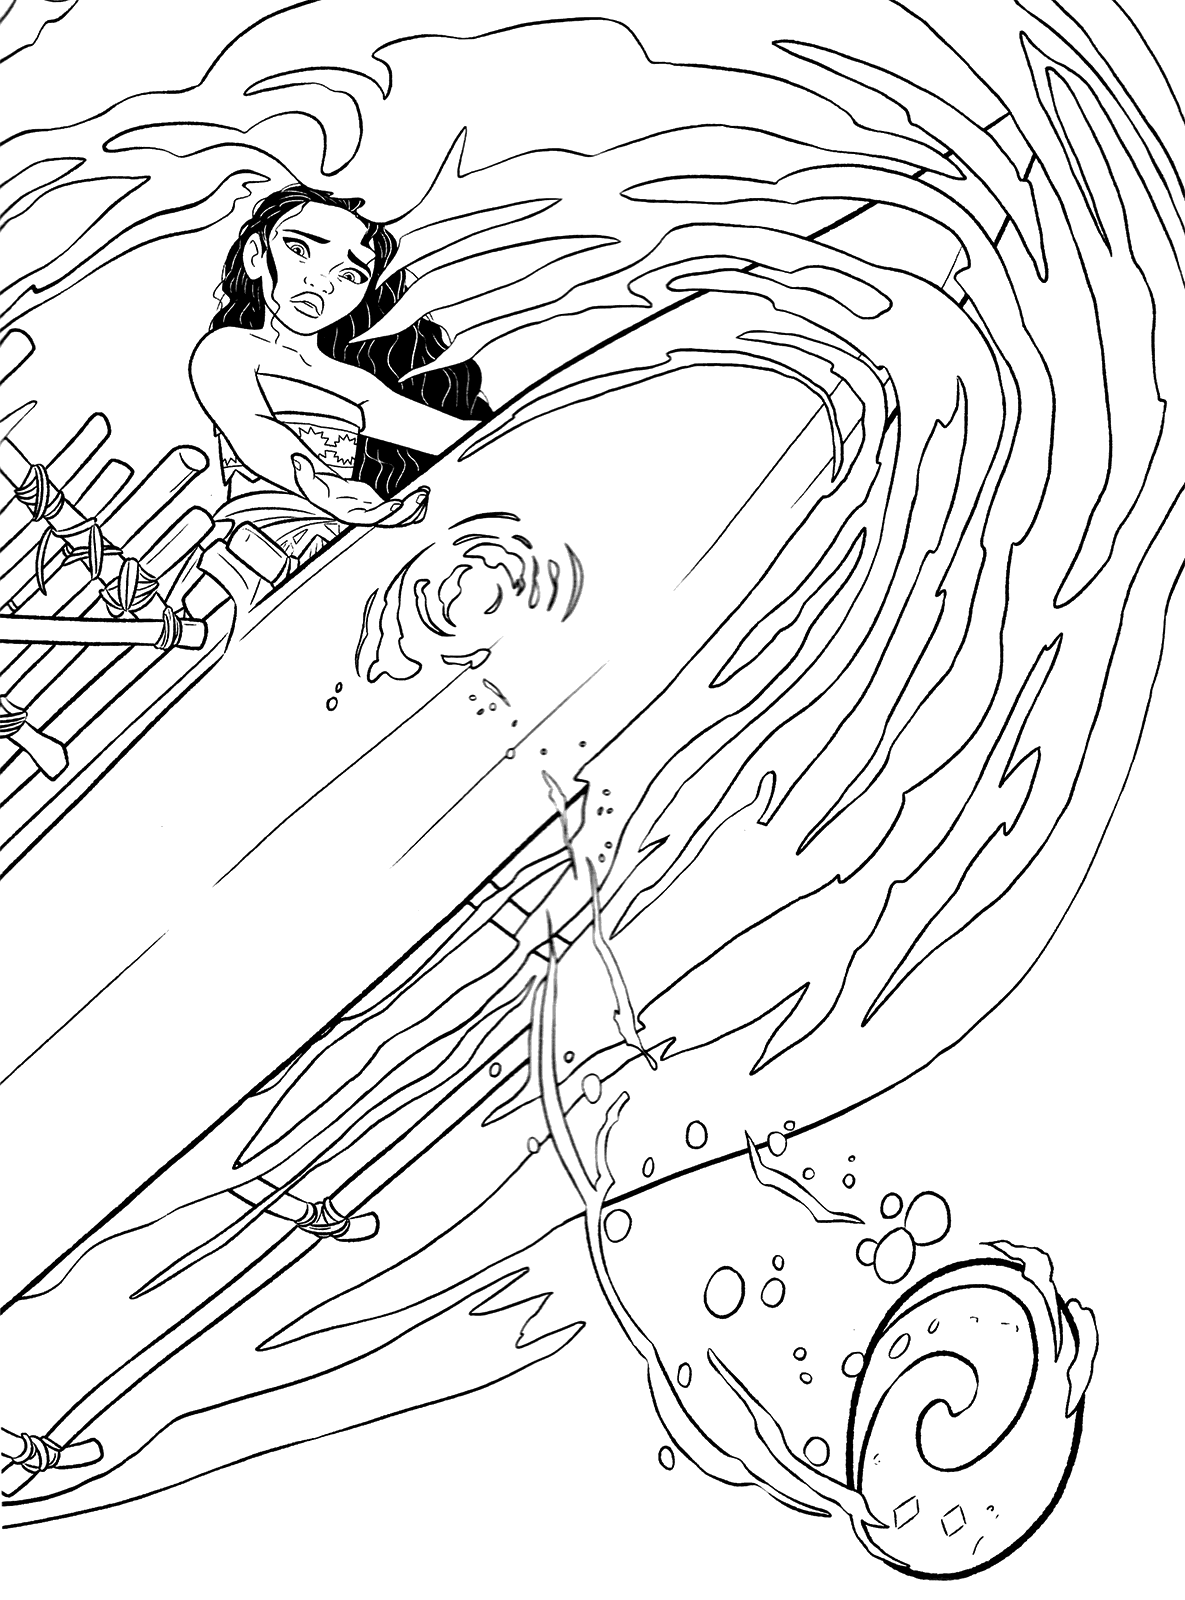 Moana Battling The Waves Coloring Page